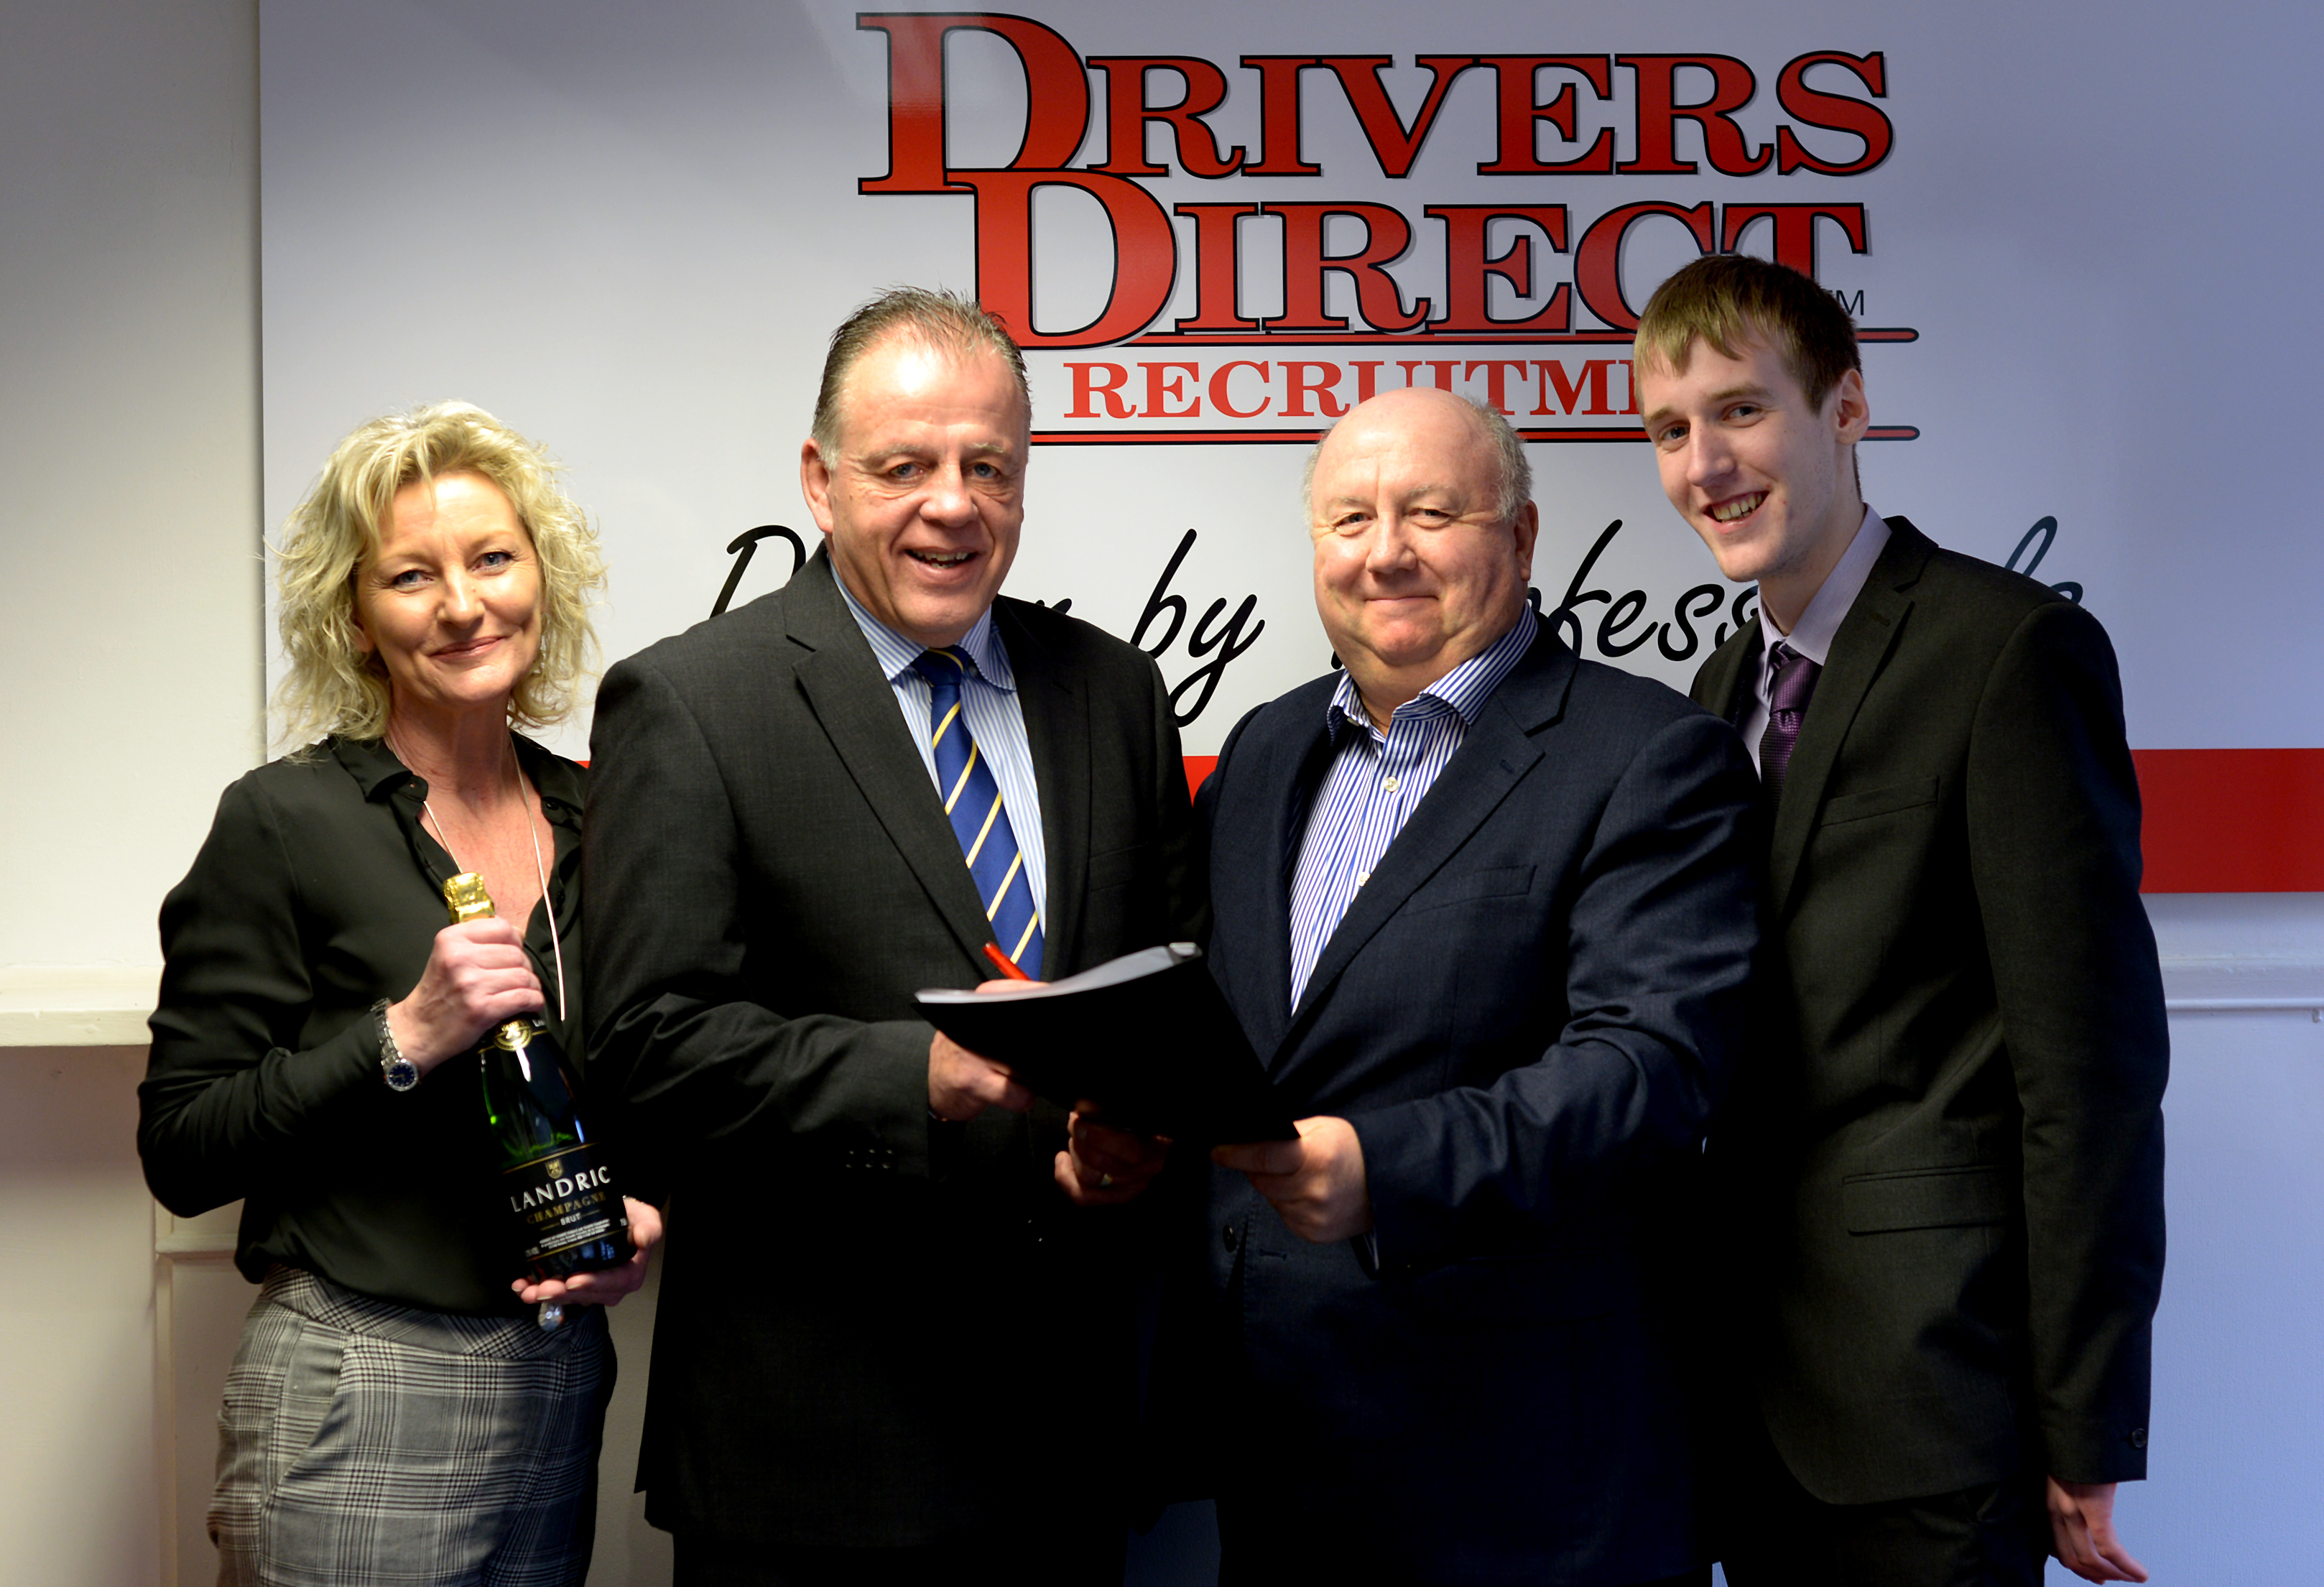 Drivers Direct Office Opens in Bury St Edmunds Office